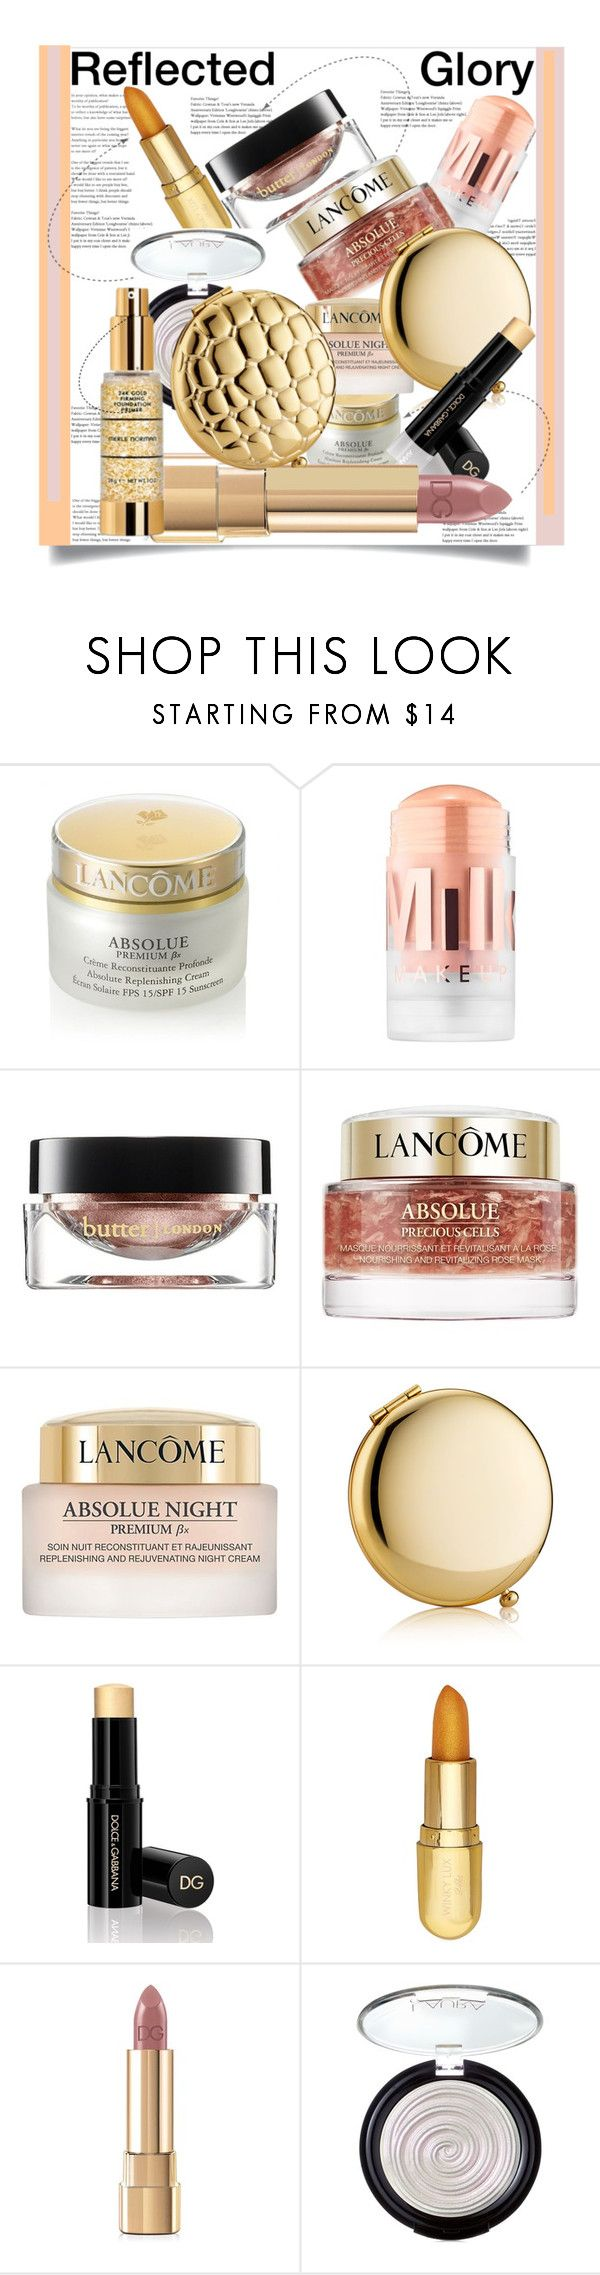 """Reflected Glory: 2018 Beauty Editor's Pick"" by helenaymangual ❤ liked on Polyvore featuring beauty, Lancôme, MILK MAKEUP, Butter London, Estée Lauder, Dolce&Gabbana, Winky Lux and Laura Geller"